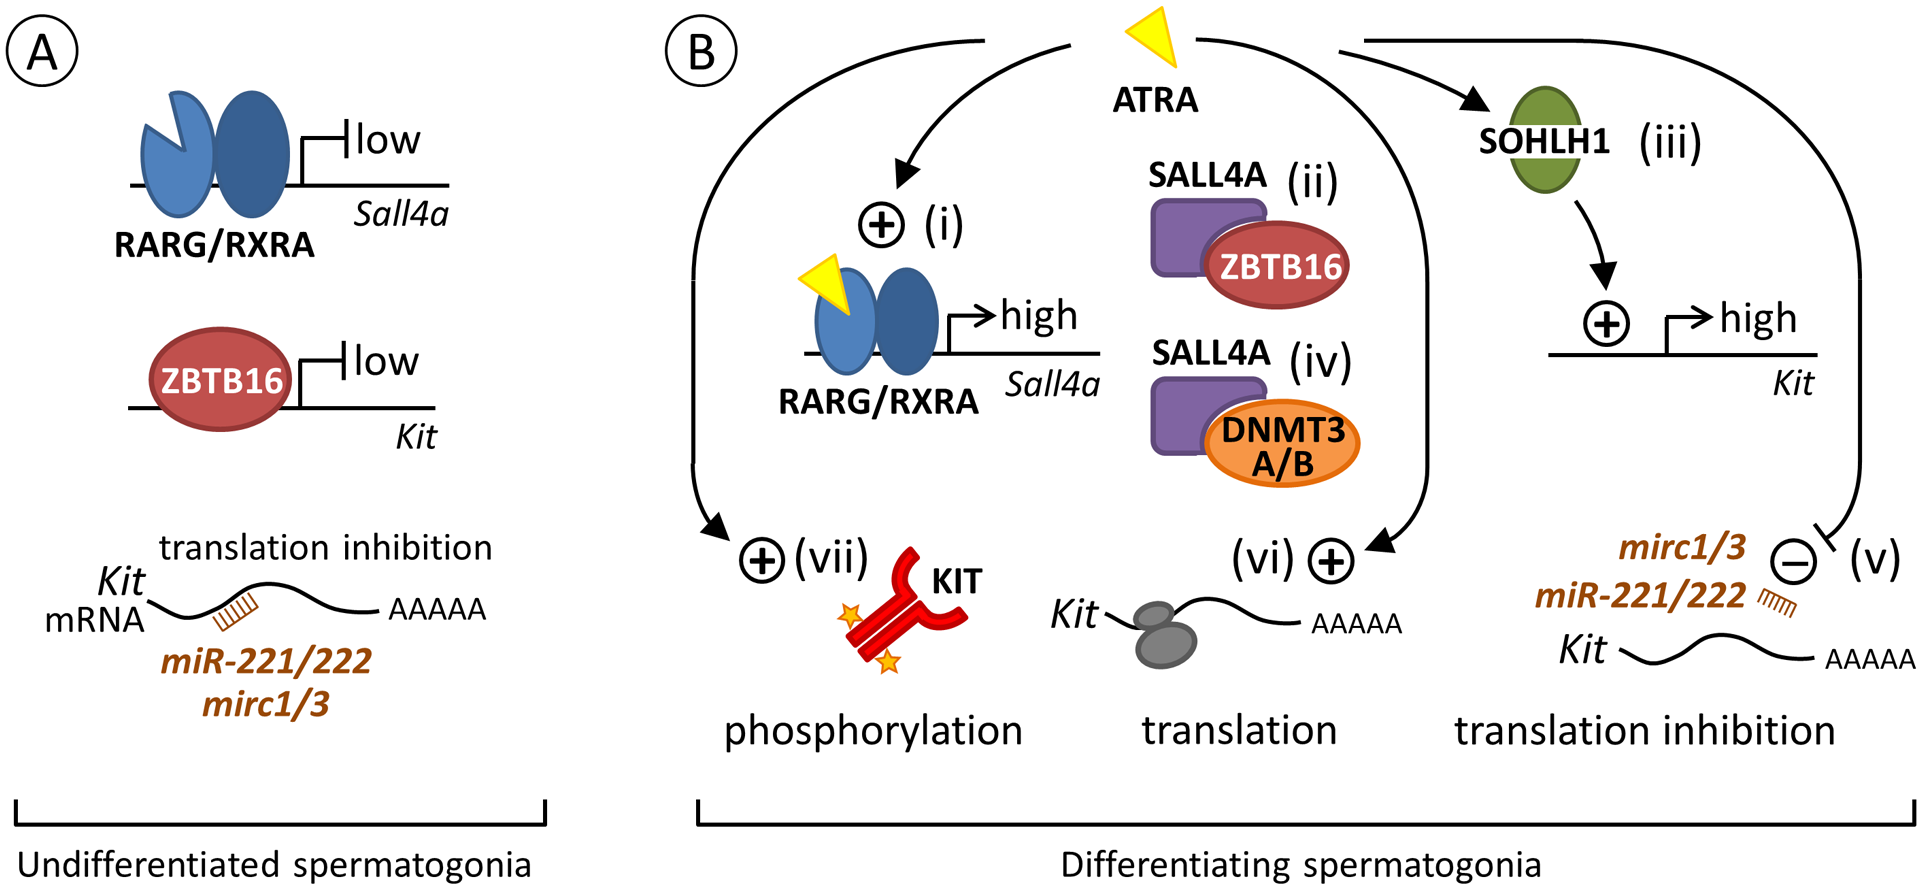 Proposed model for the regulation of <i>Kit</i> expression by ATRA during the transition from A<sub>al</sub> to A<sub>1</sub> spermatogonia.